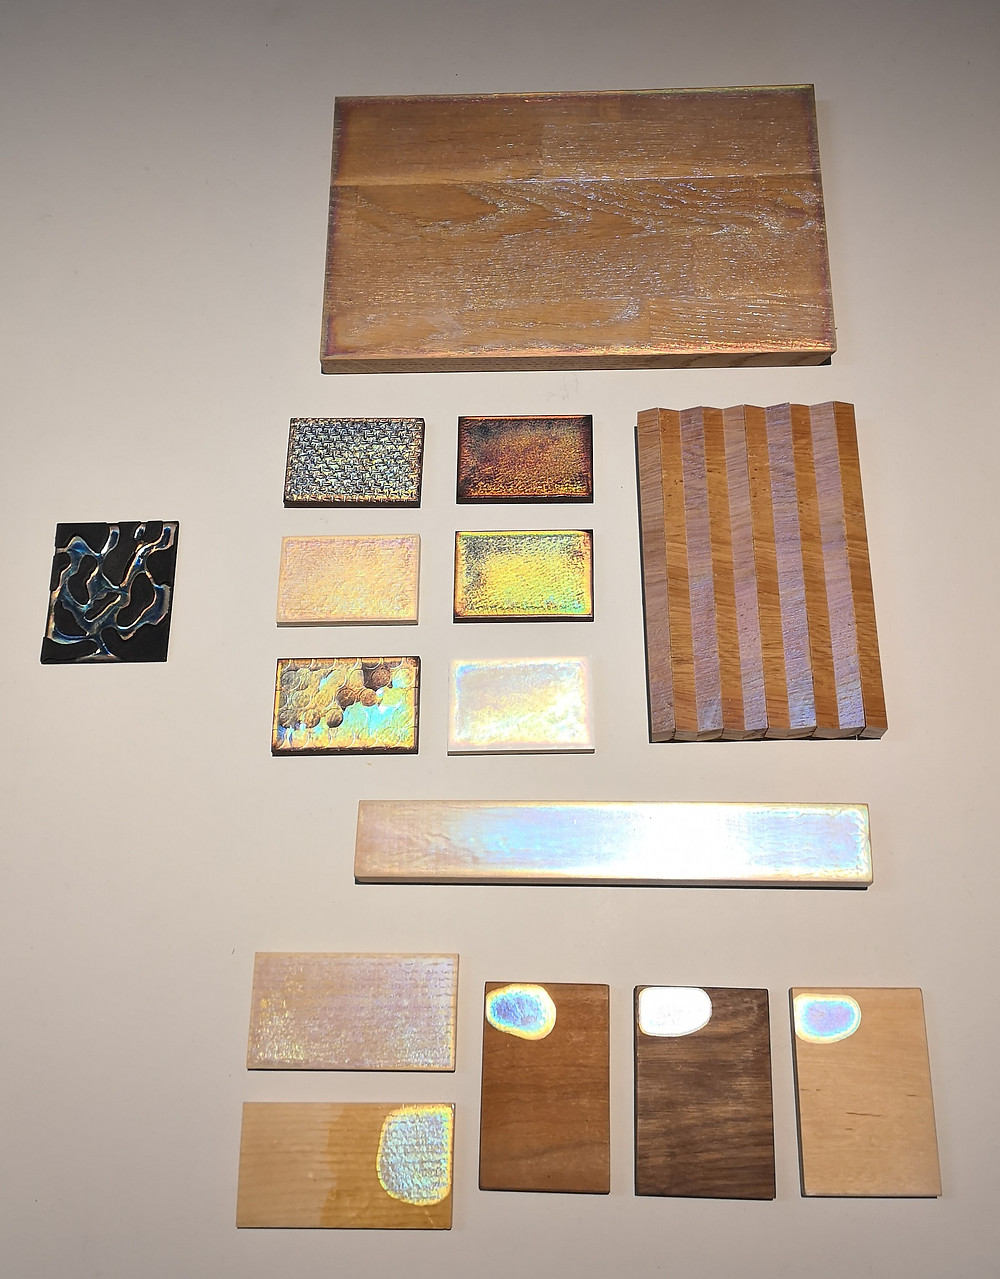 Squares of different materials and finishes.